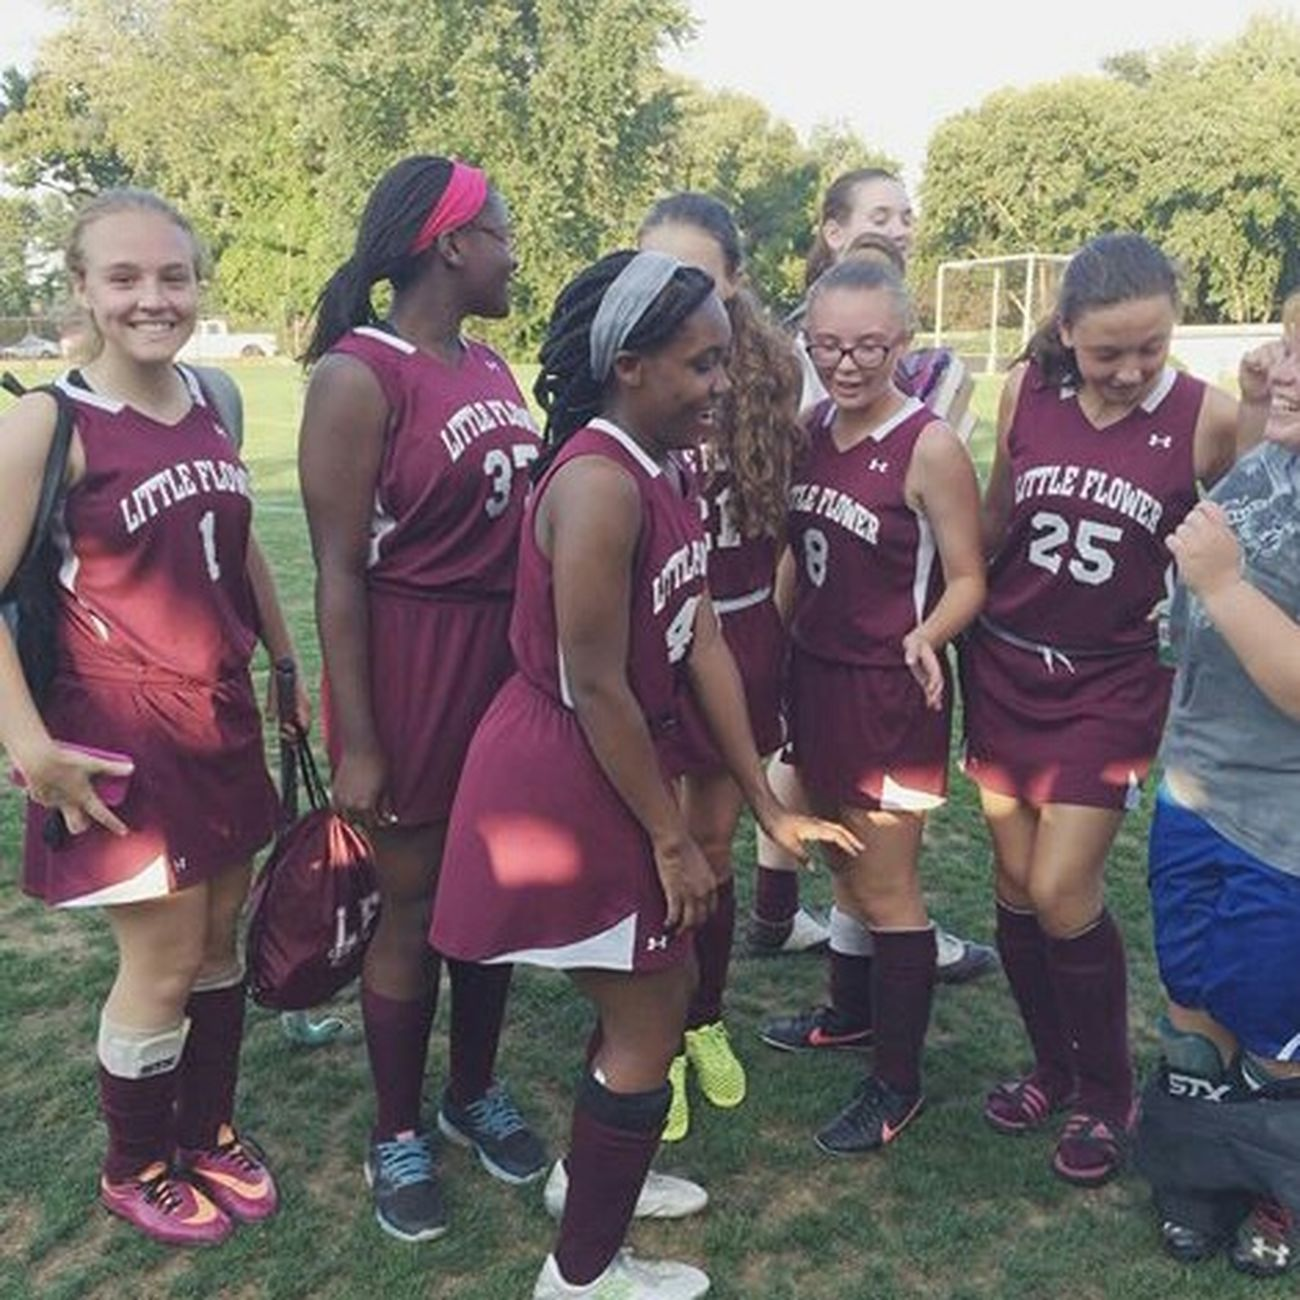 dont fhock with us Field Hockey Fhockey Love My Team Follow Me I'll Follow Back Followback Follow4follow Followshoutoutlikecomment Photography